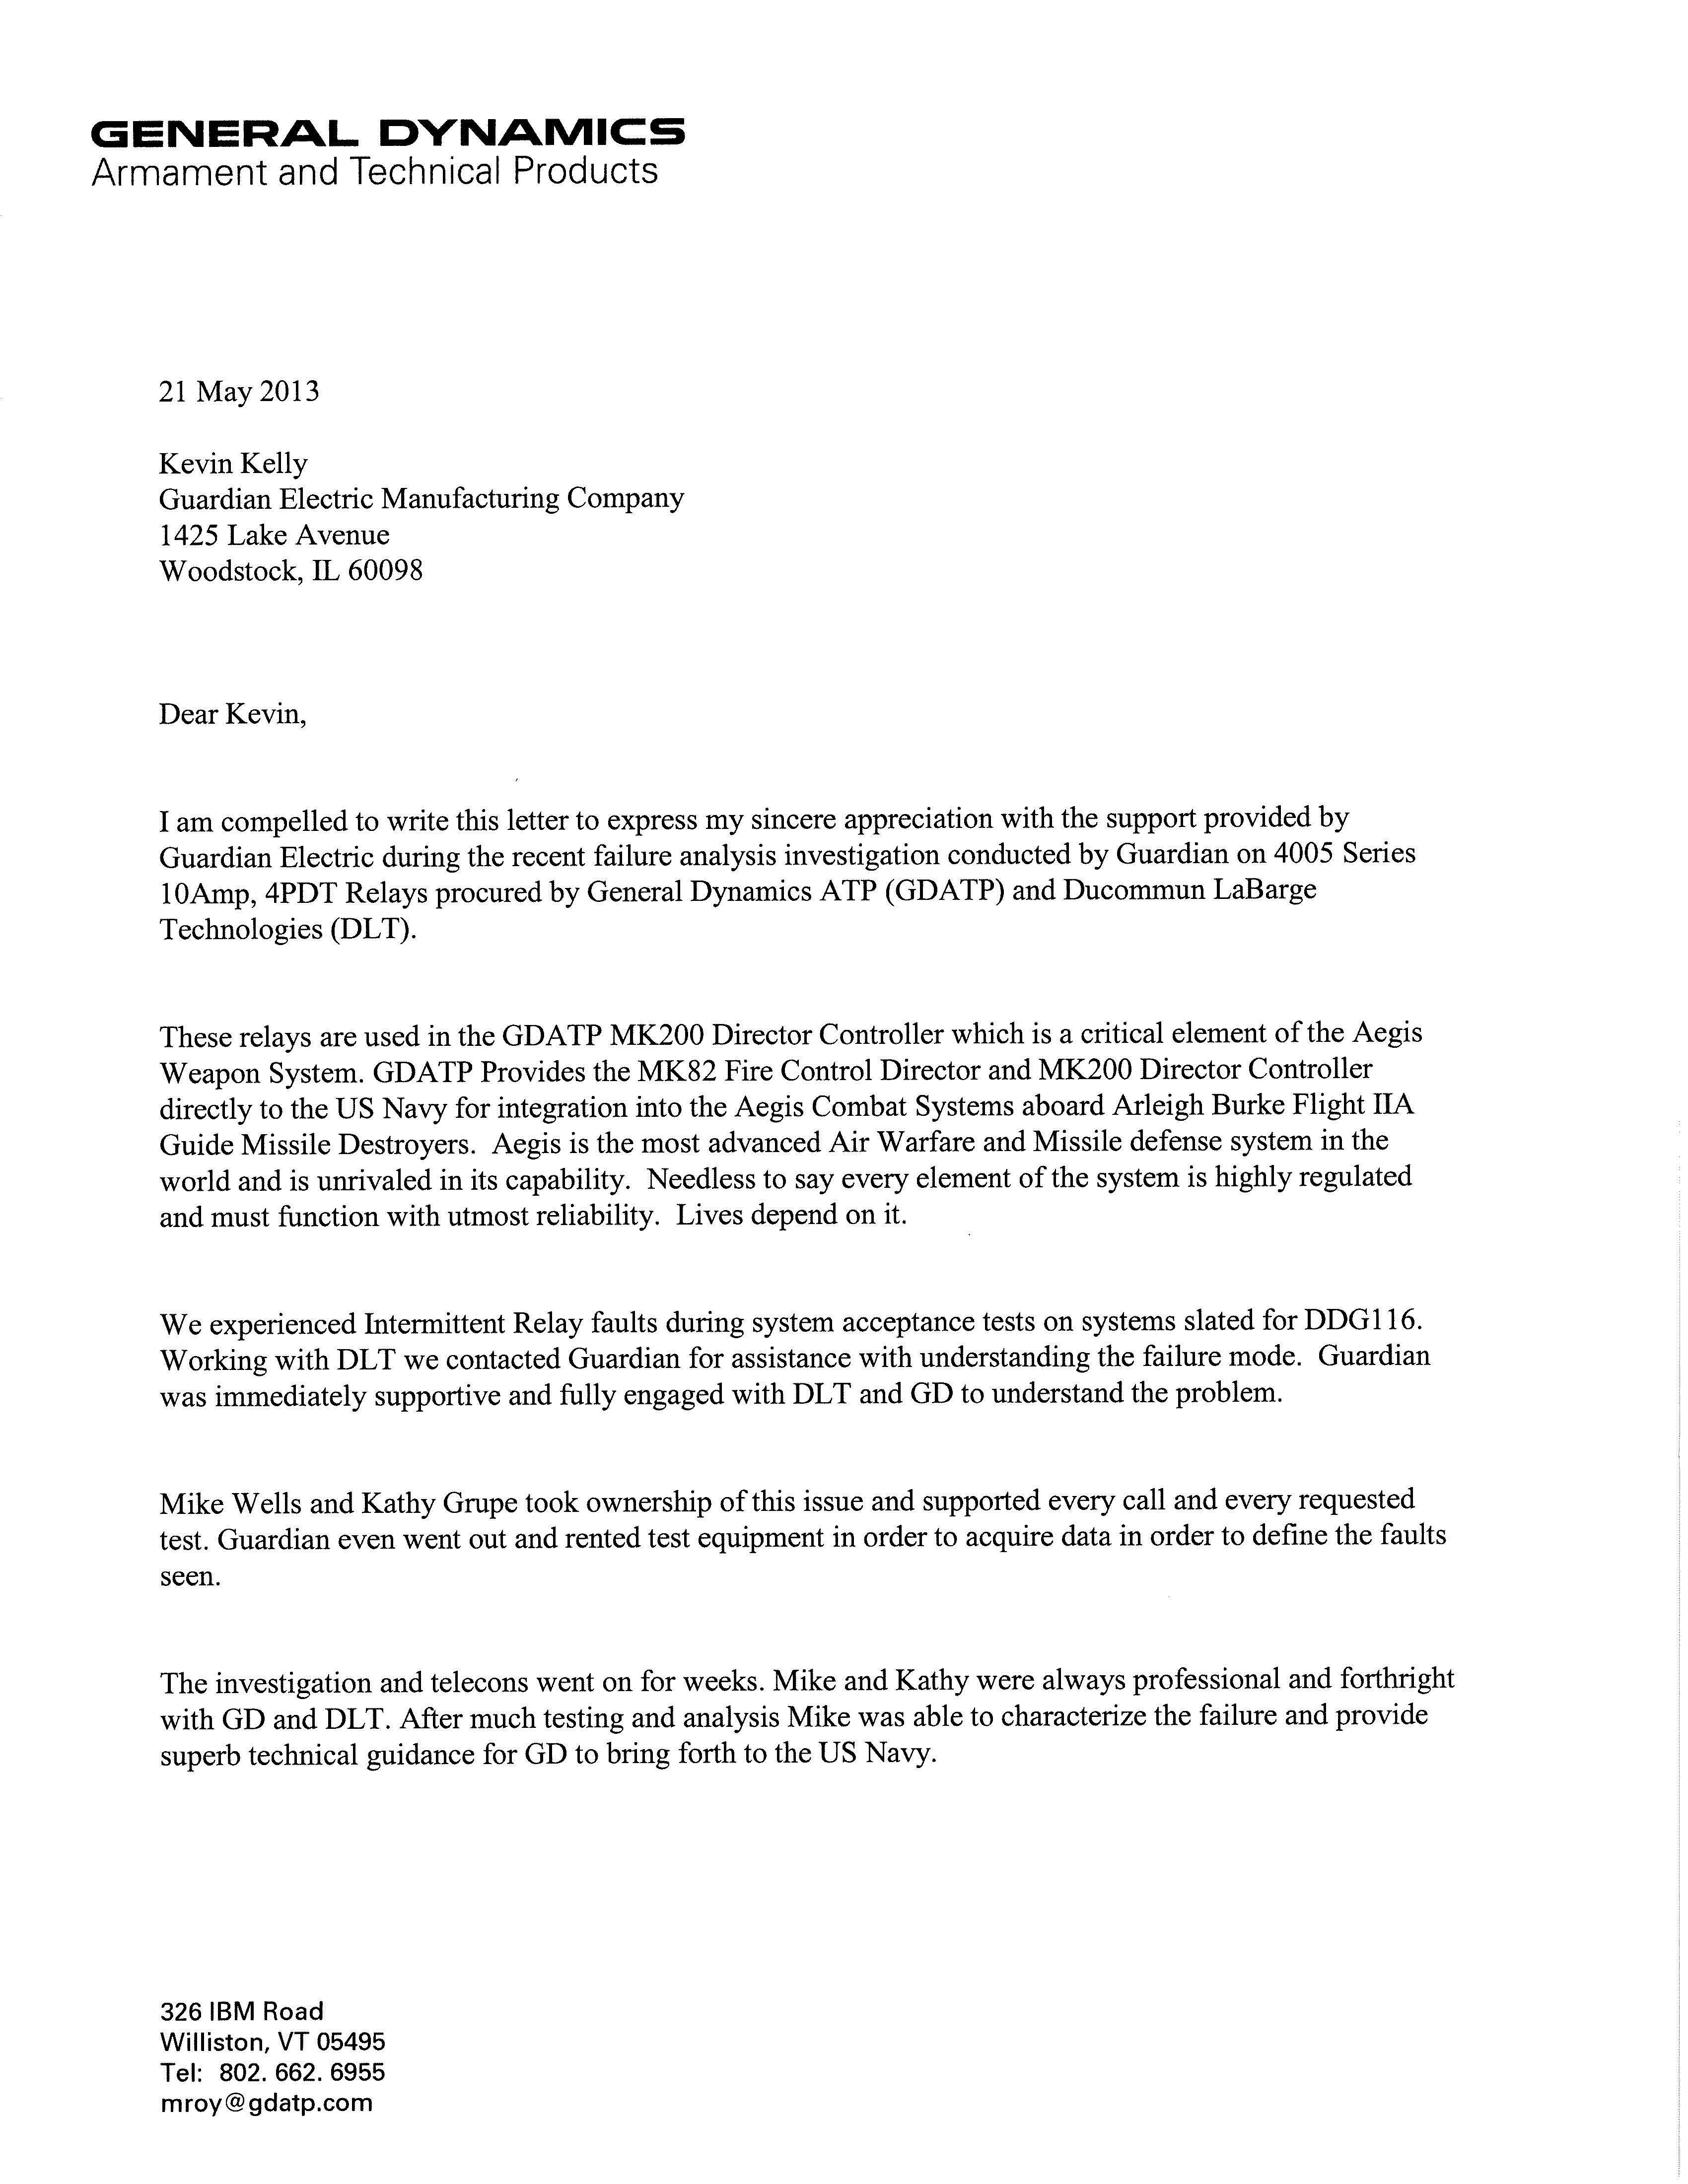 005 Unusual Email Cover Letter Example For Customer Service Sample  RepresentativeFull